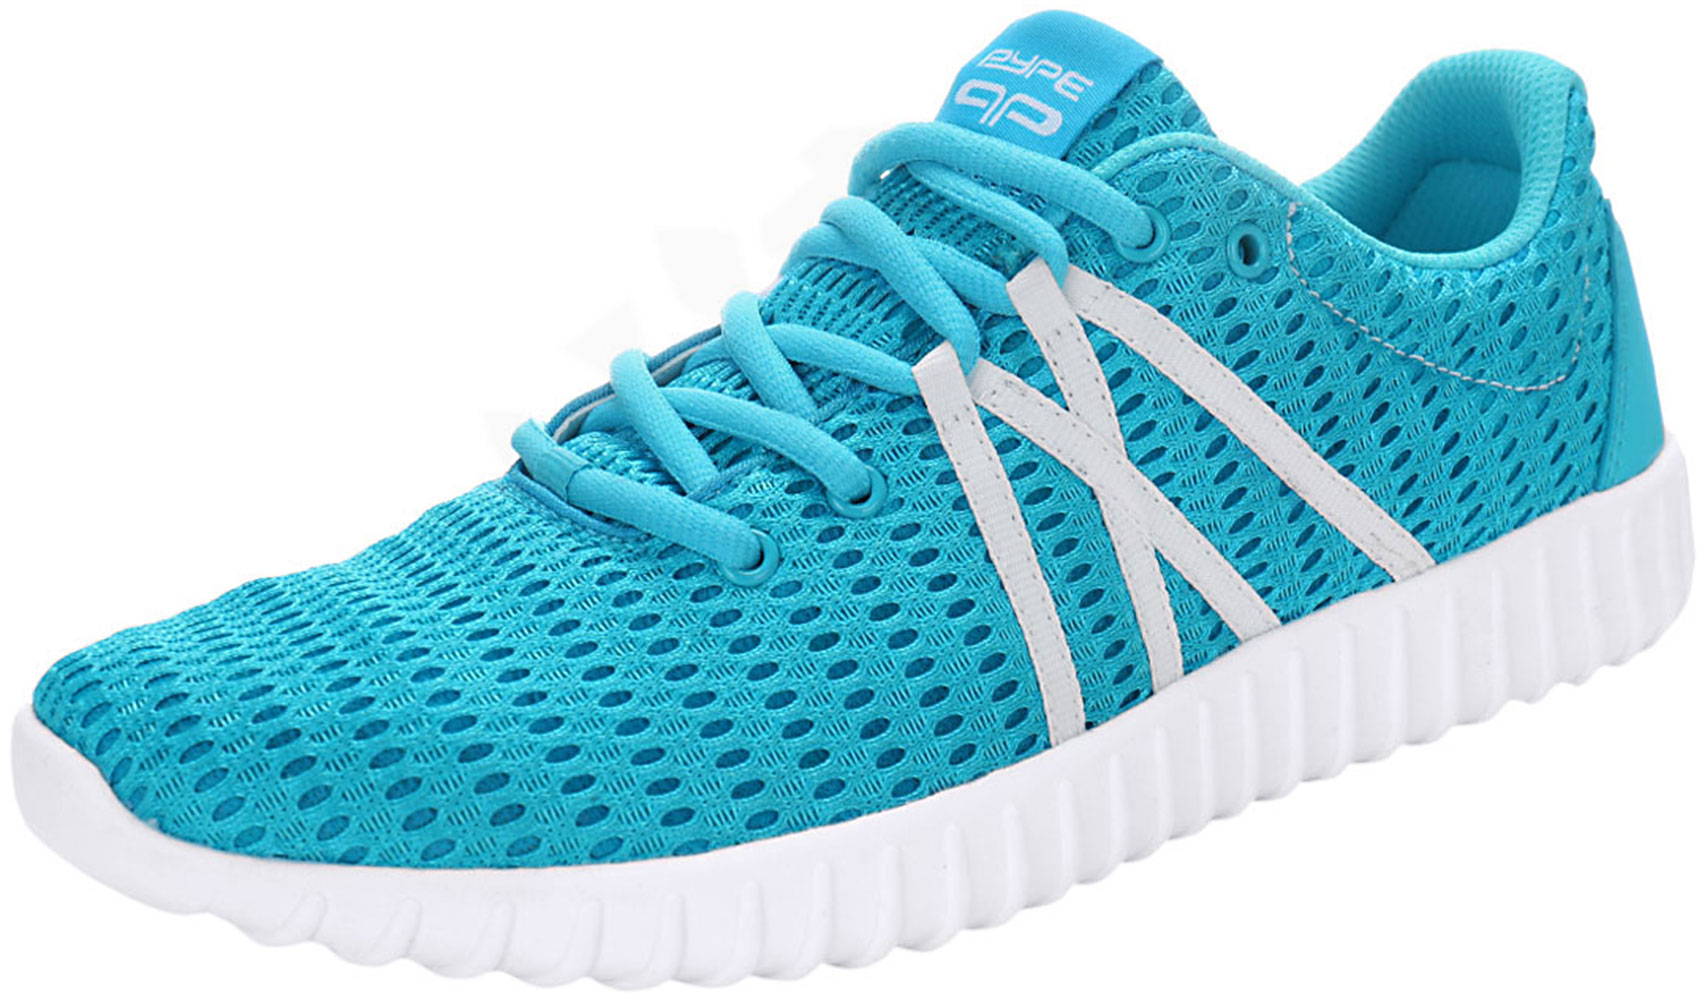 PYPE Women Contrast Color Lace Up Mesh Training Sneakers Blue US 8